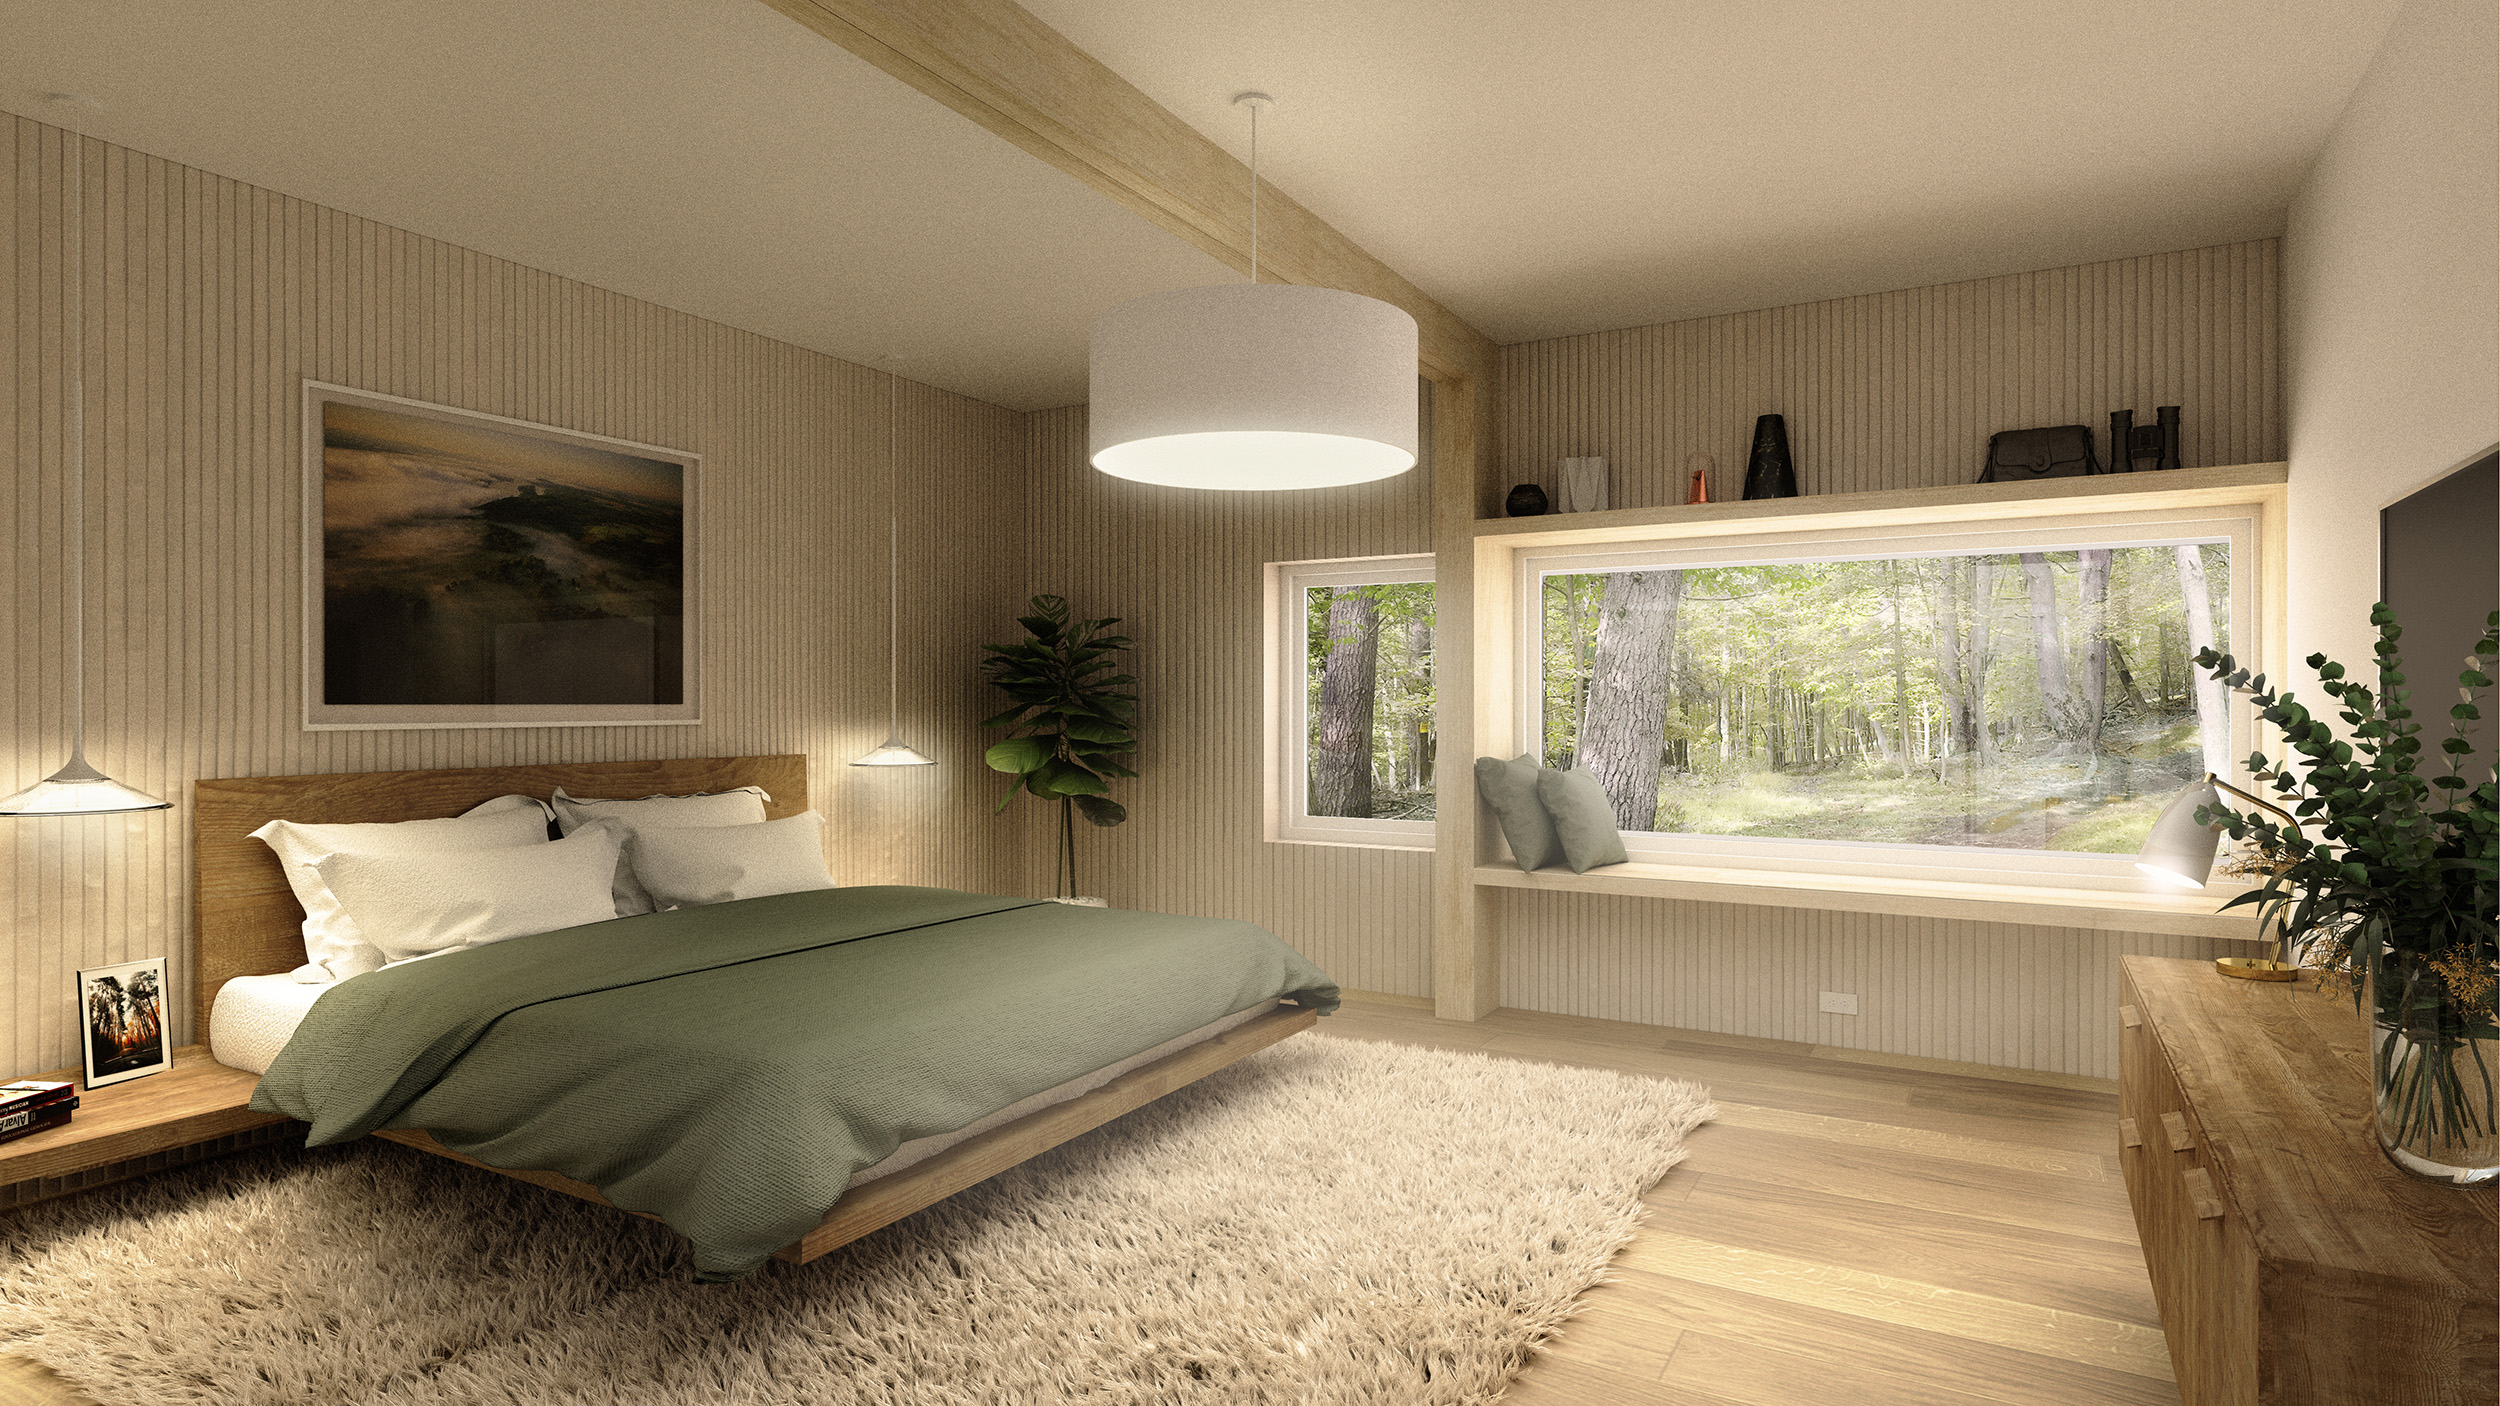 The generously sized Master Bedroom has framed views towards the forested mountainside with an inbuilt picture window seat for contemplative reading.